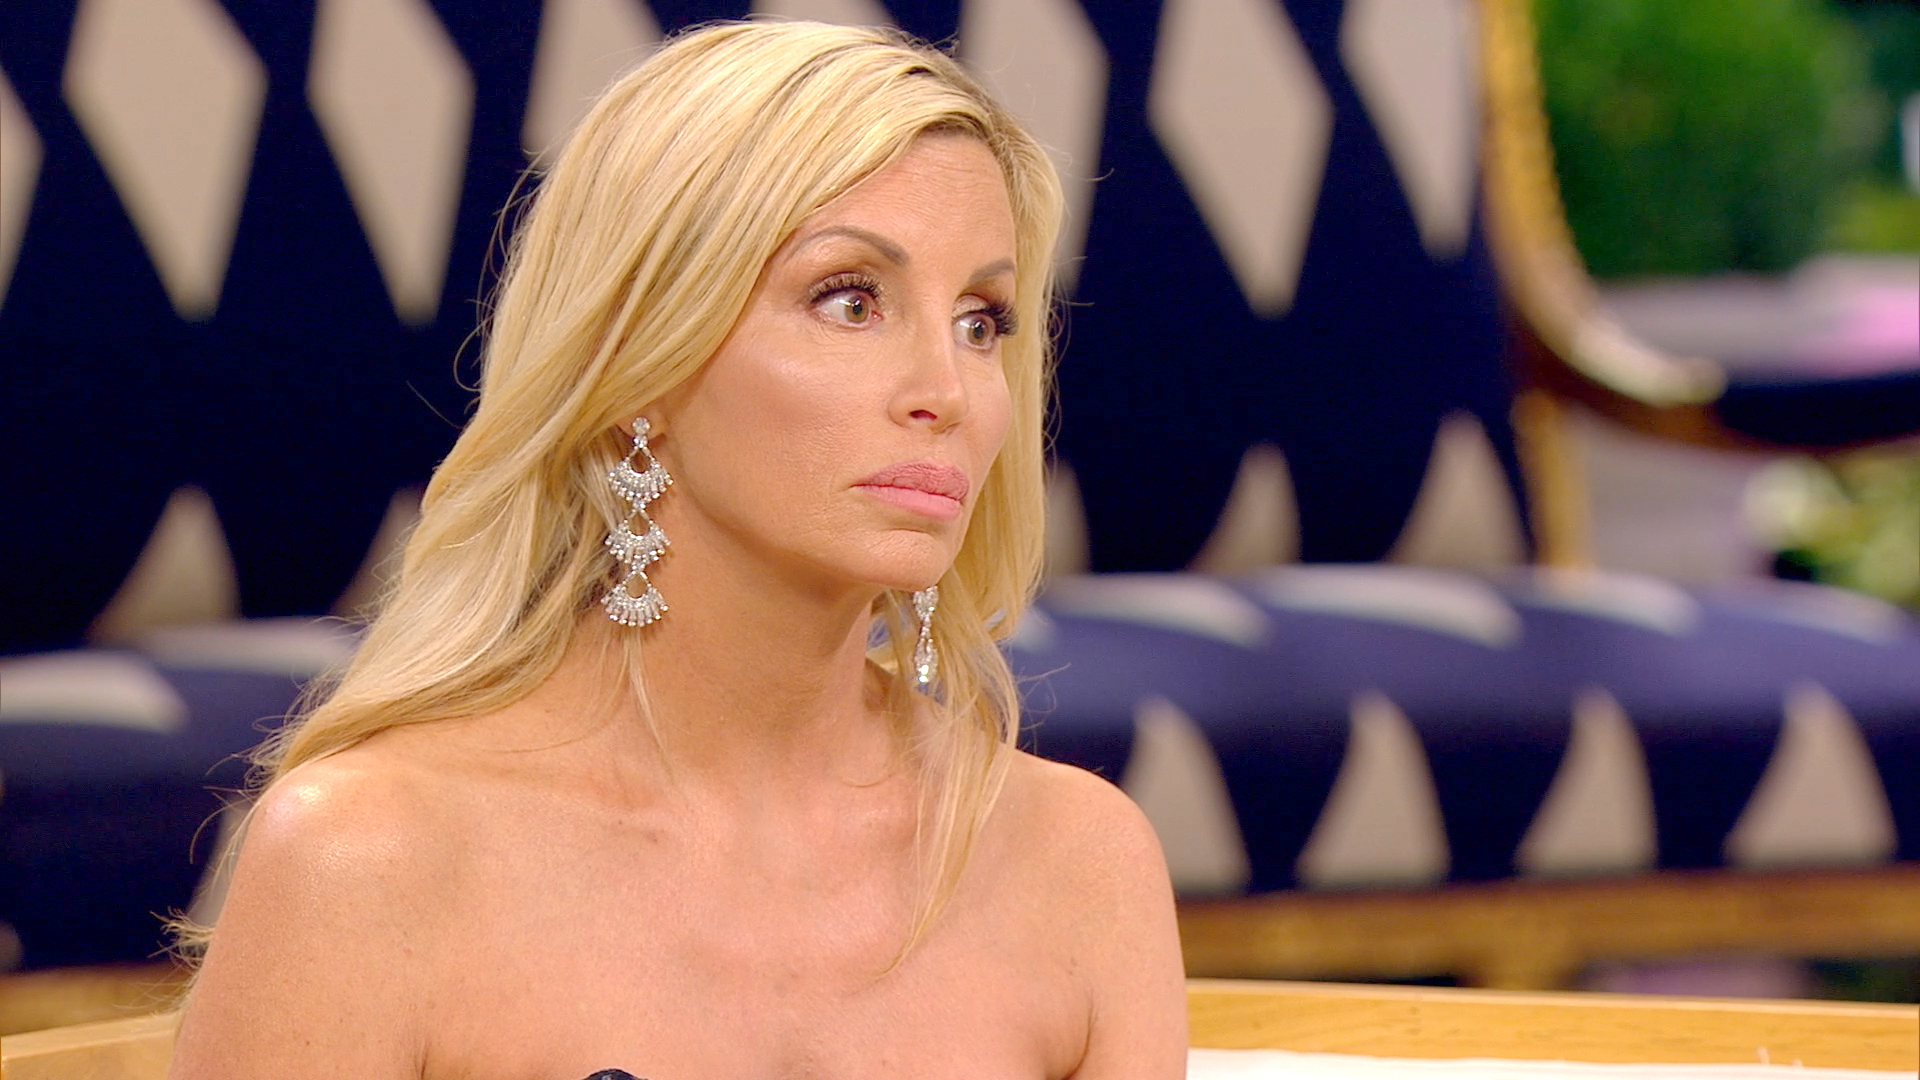 Camille Grammer Tells Denise Richards She Doesn't Like Her